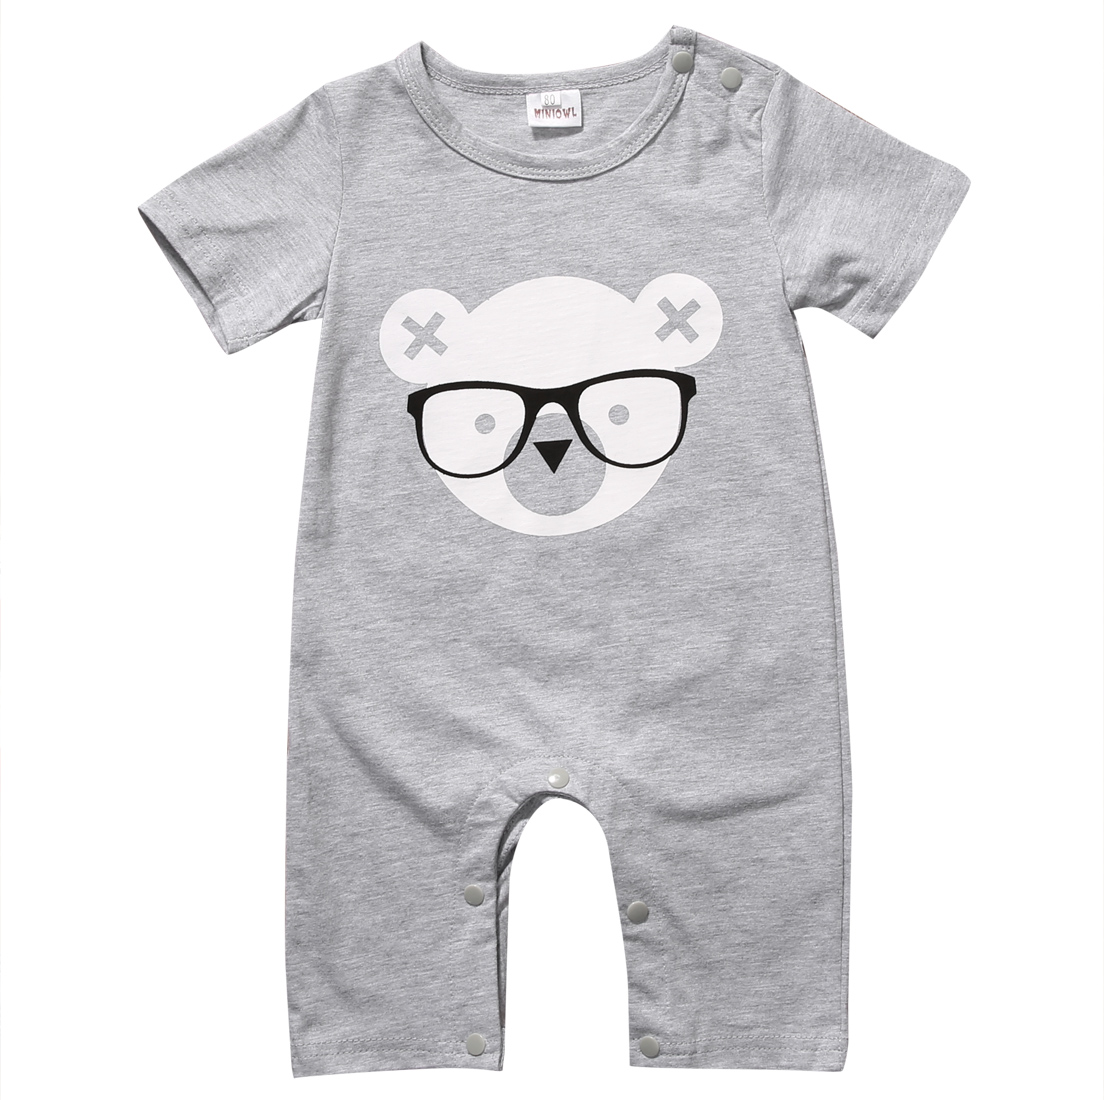 2018 Hot Summer Cute Newborn Baby Boy Girl Romper Short Sleeve Bear Cotton Jumpsuit Toddler Kids Outfits 0-24M iyeal newest 2018 princess newborn baby girl romper lace cotton long sleeve infant jumpsuit headband toddler outfits for 0 12m